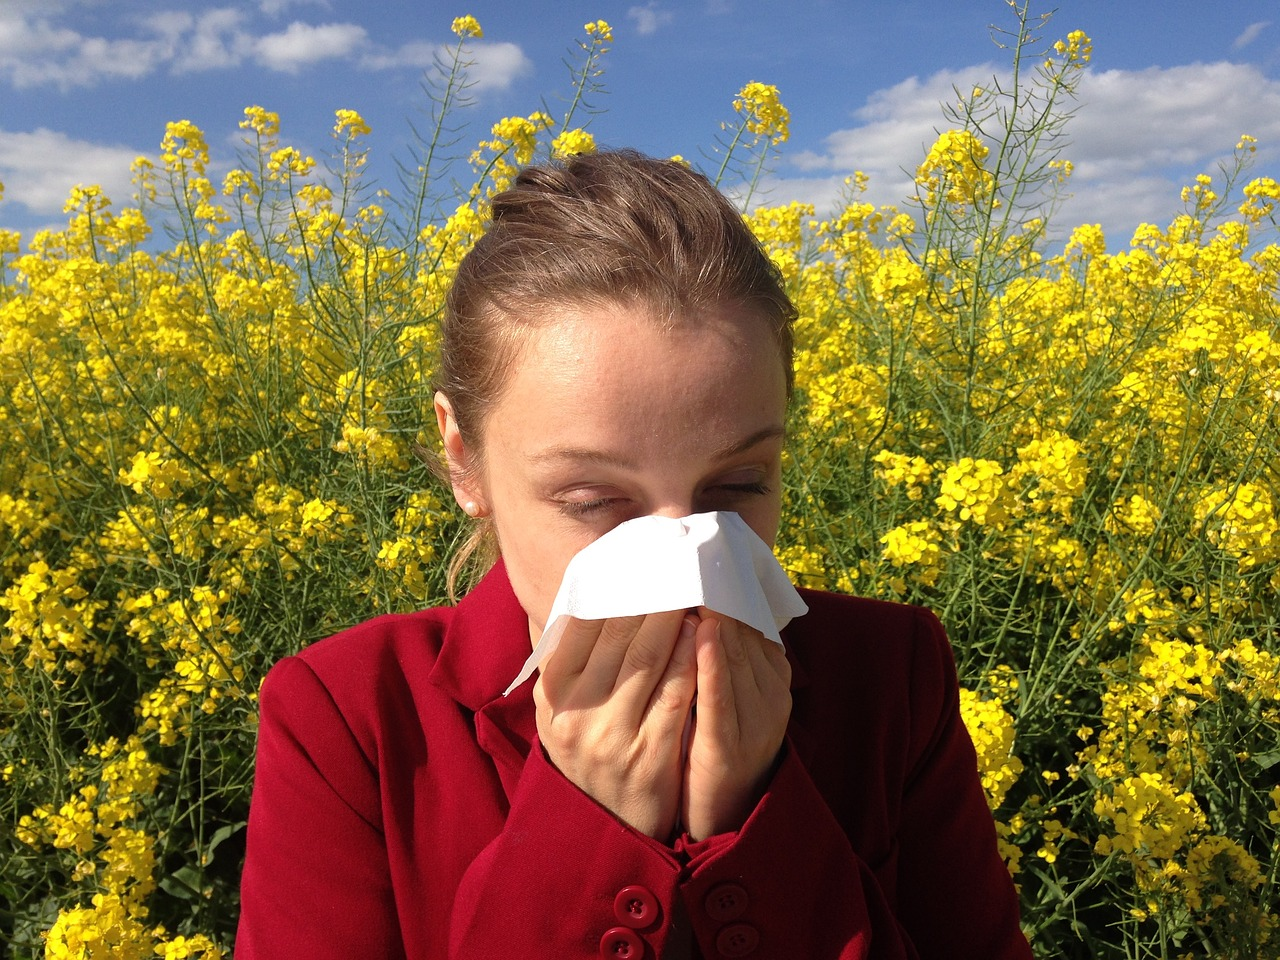 Can You Stop Your Child From Developing Allergies?